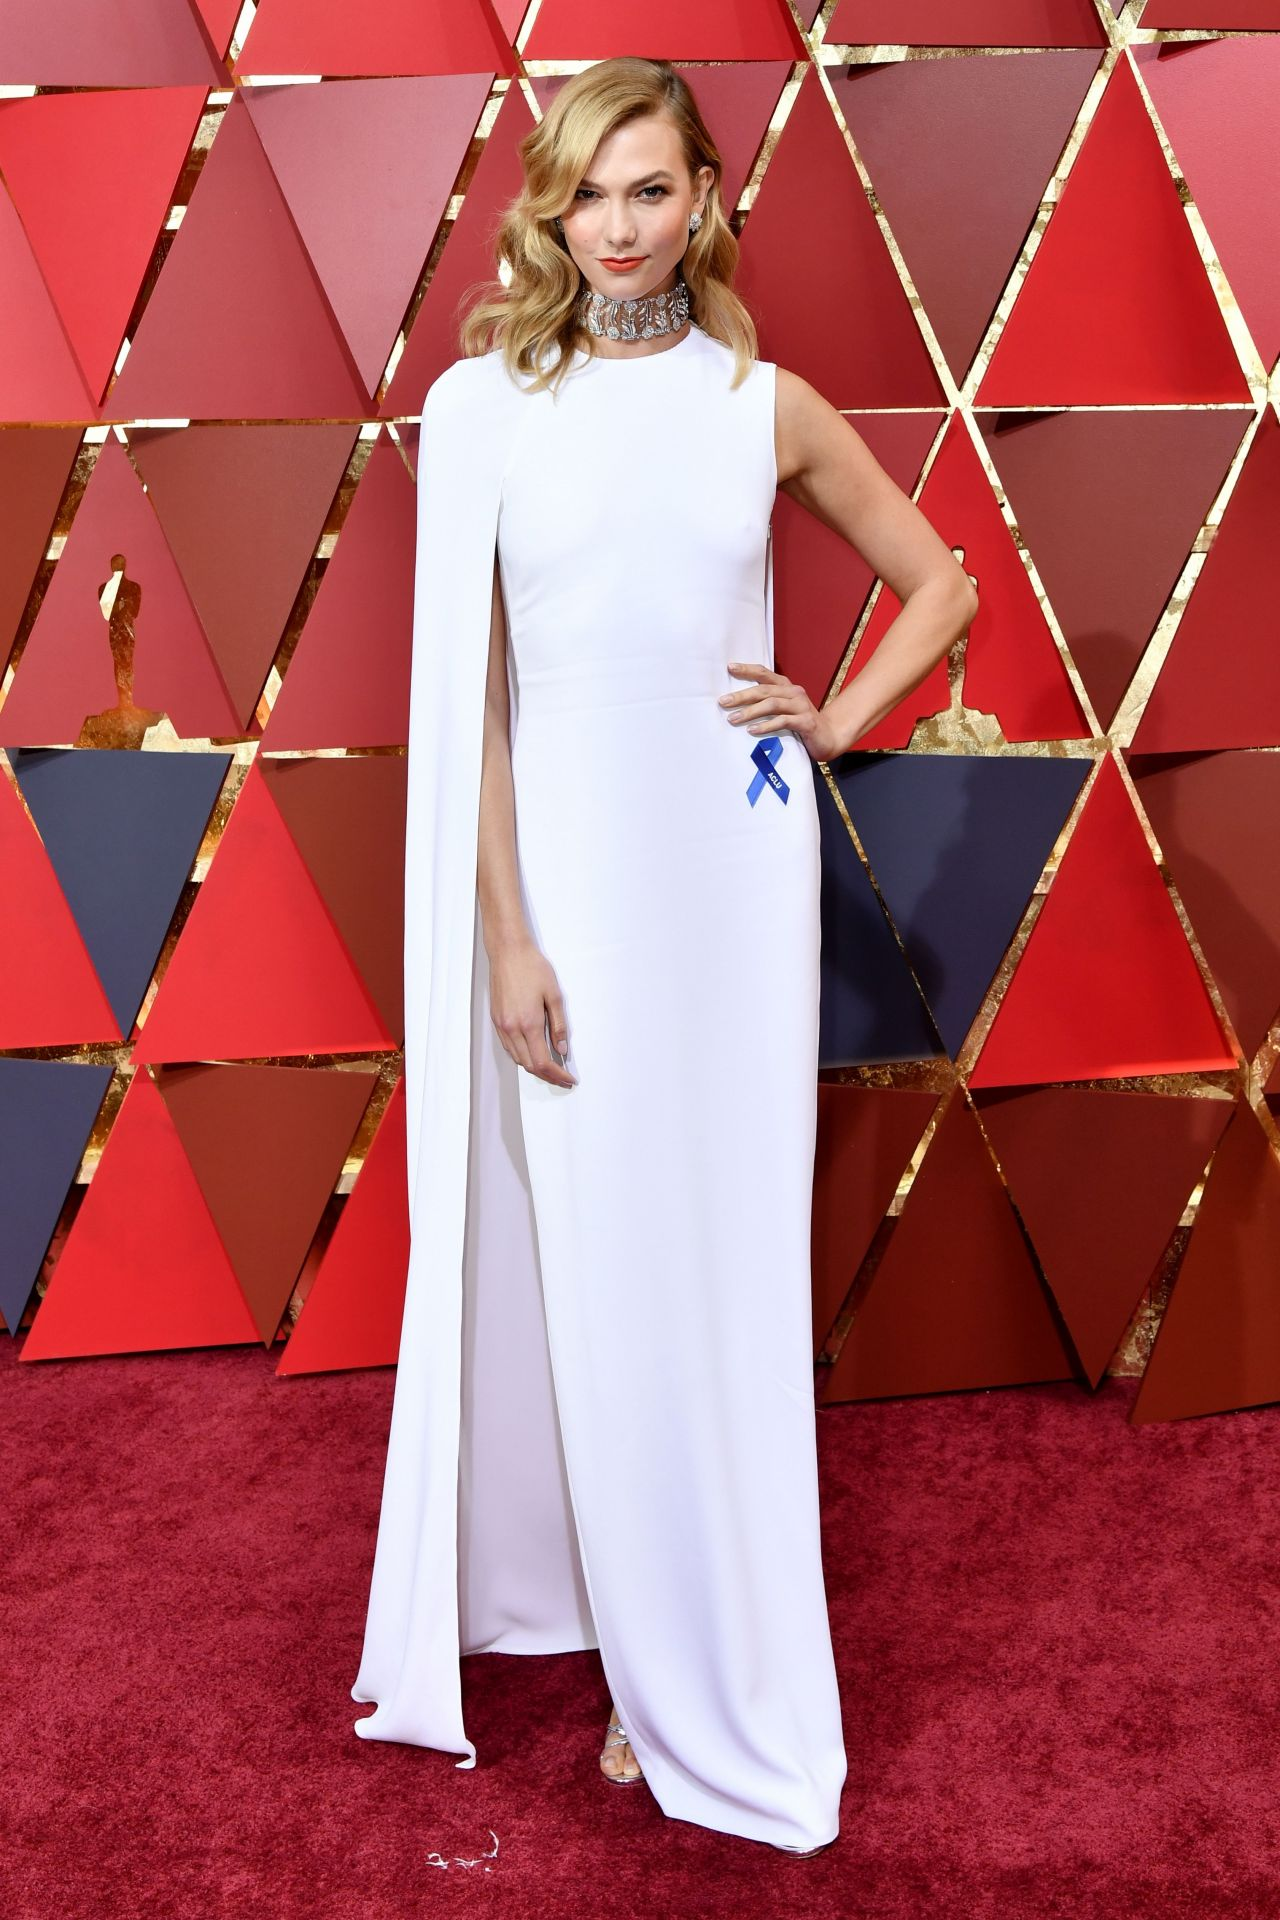 Karlie kloss oscars 2019 red carpet in hollywood naked (99 photo)